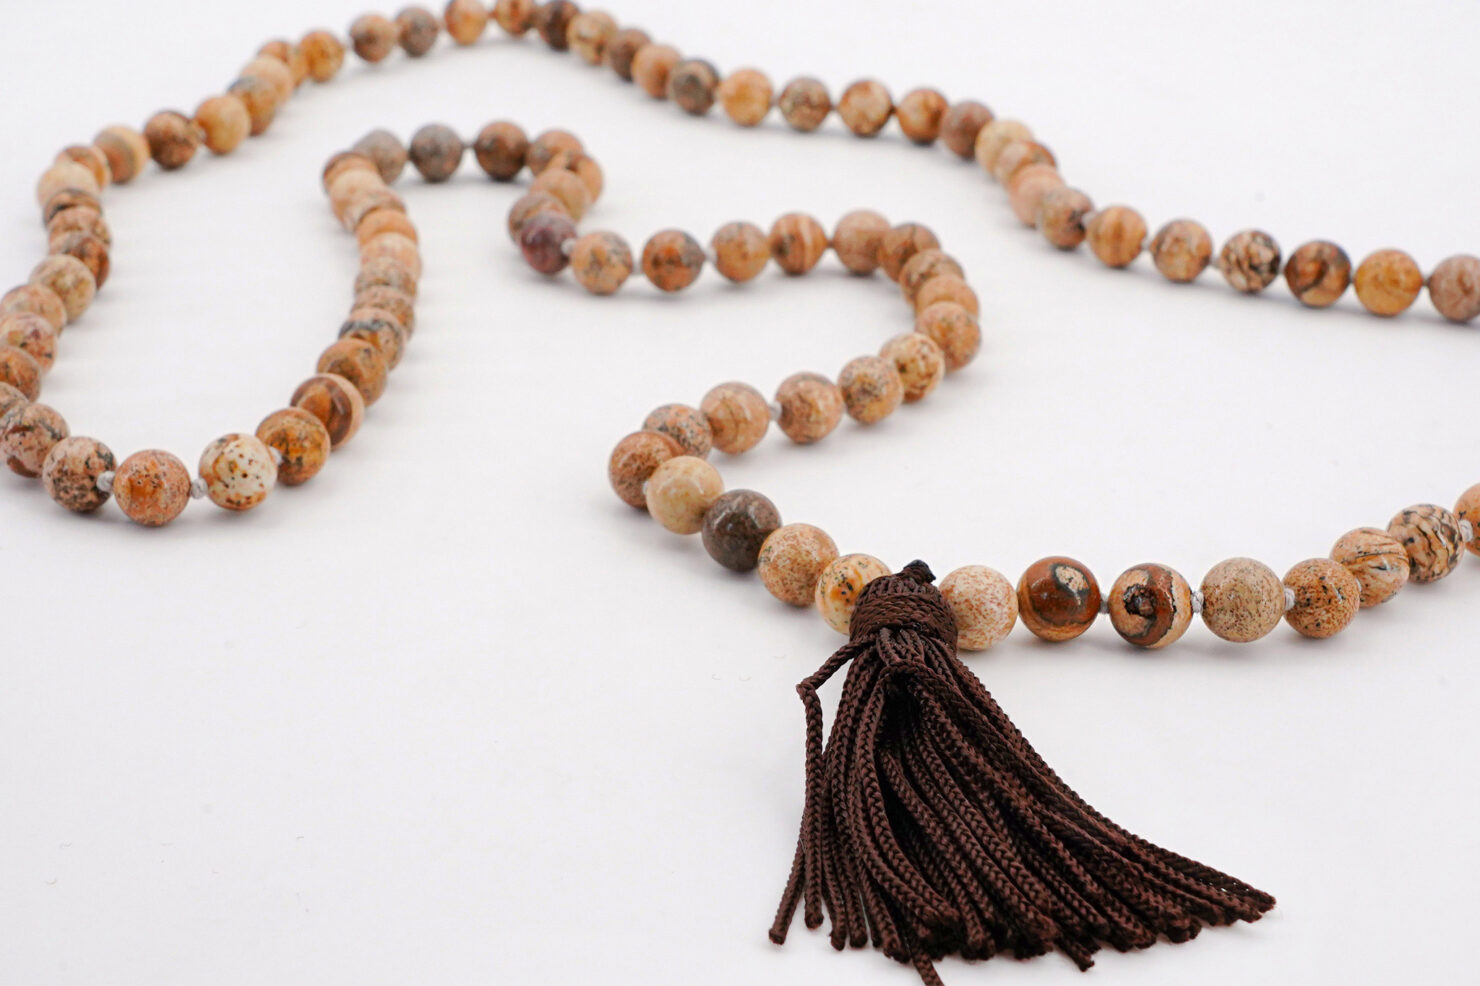 LONG NECKLACE STONES WITH TASSEL GOLD STONE SINT - M11SHOP